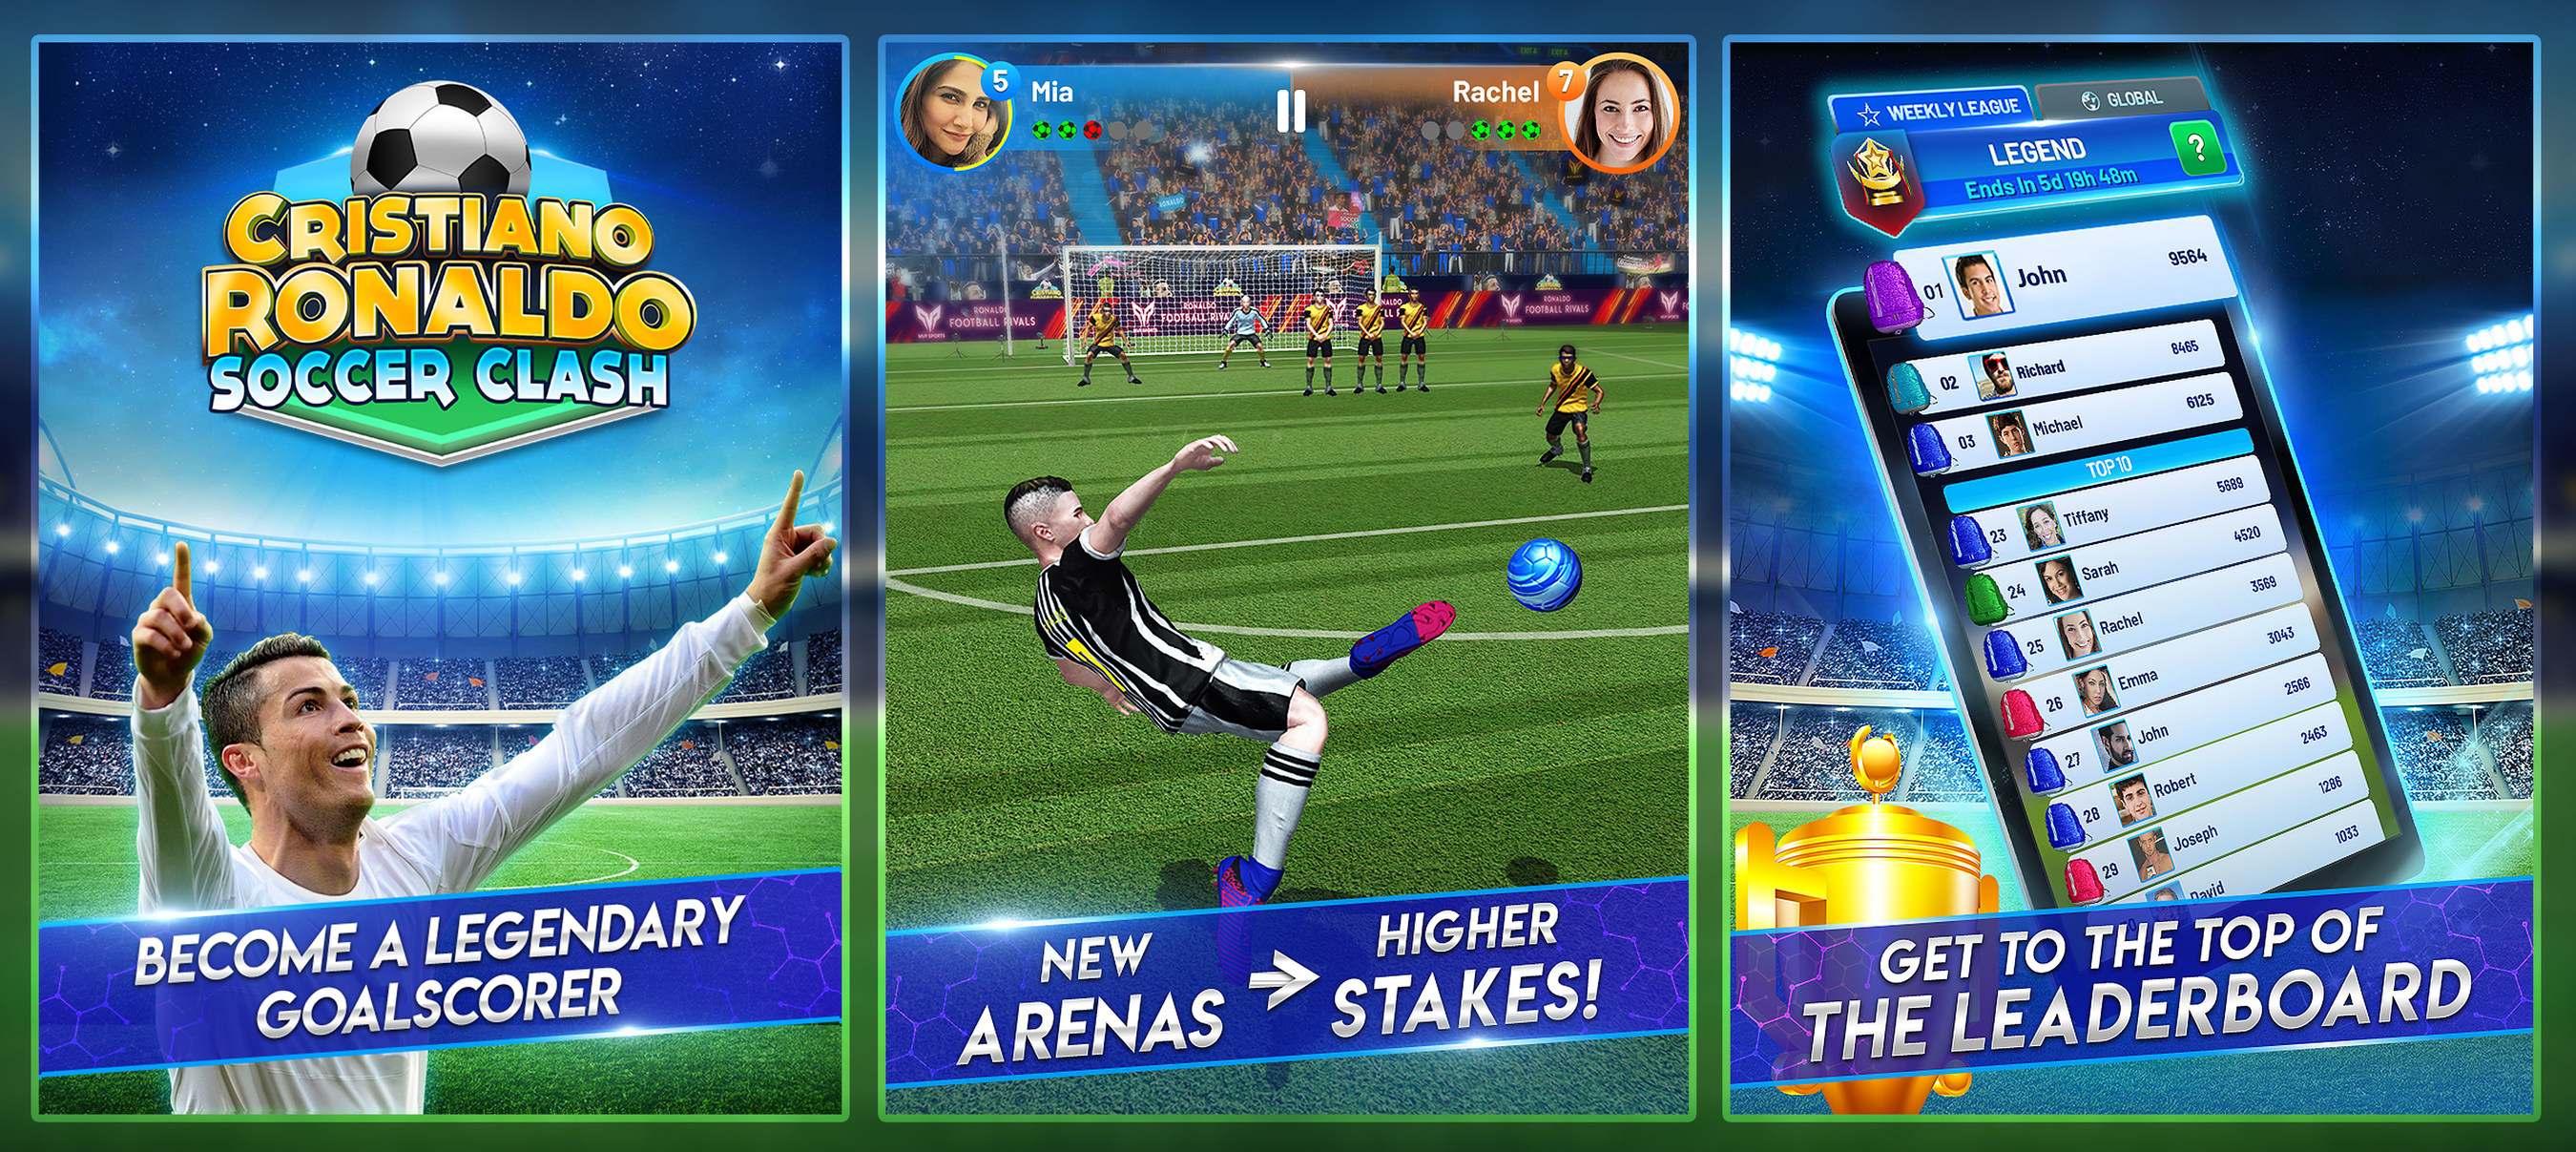 Play With Cristiano Sports Star Launches Official Soccer Game Cristiano Ronaldo Soccer Clash